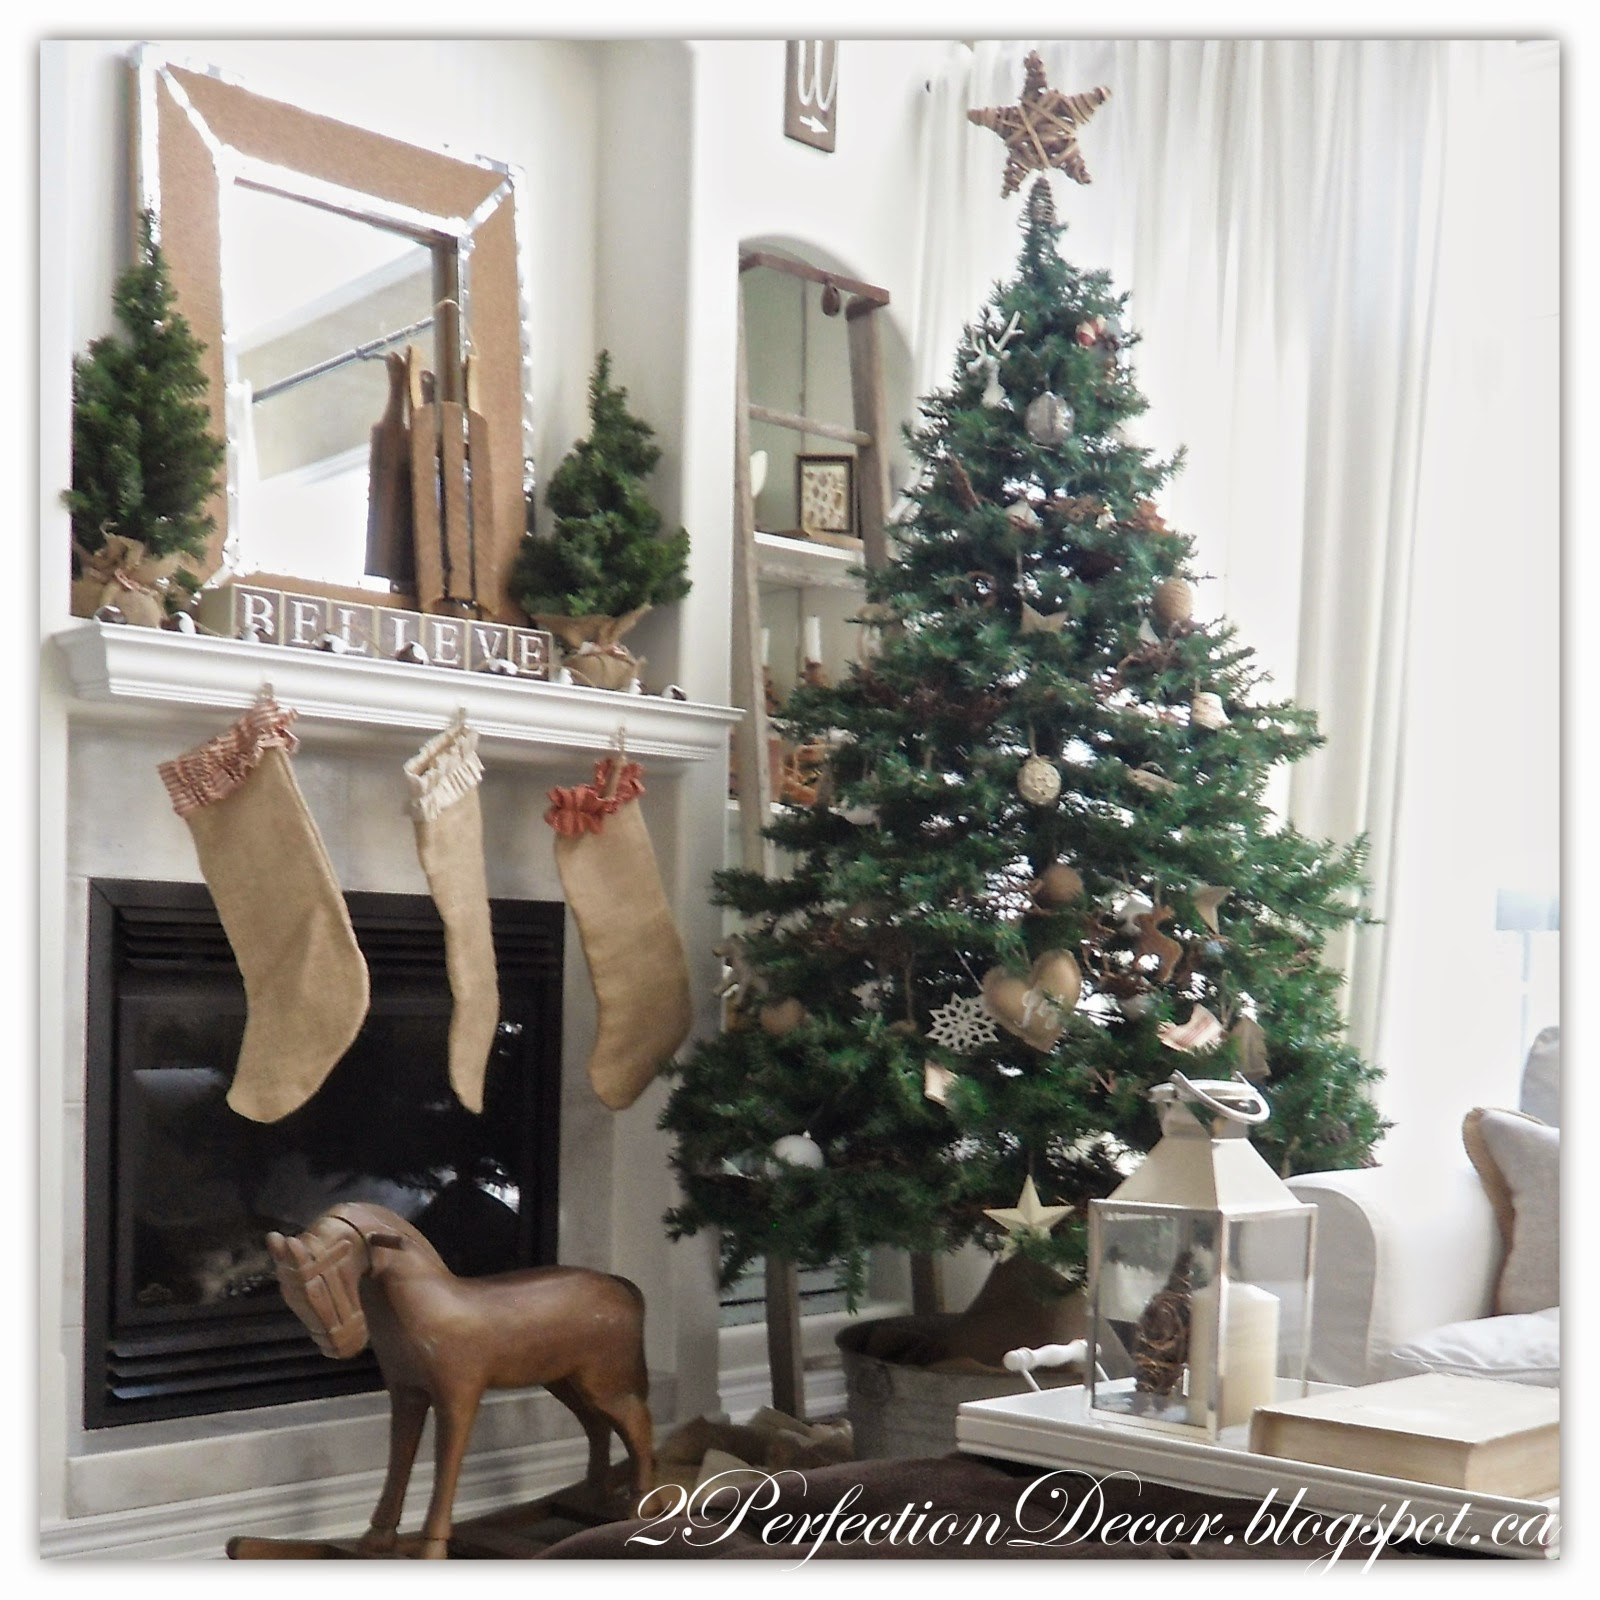 our understated tree features a wooden star vine garland with a mix of new and homemade ornaments mostly made from natural materials like burlap - French Country Christmas Decor